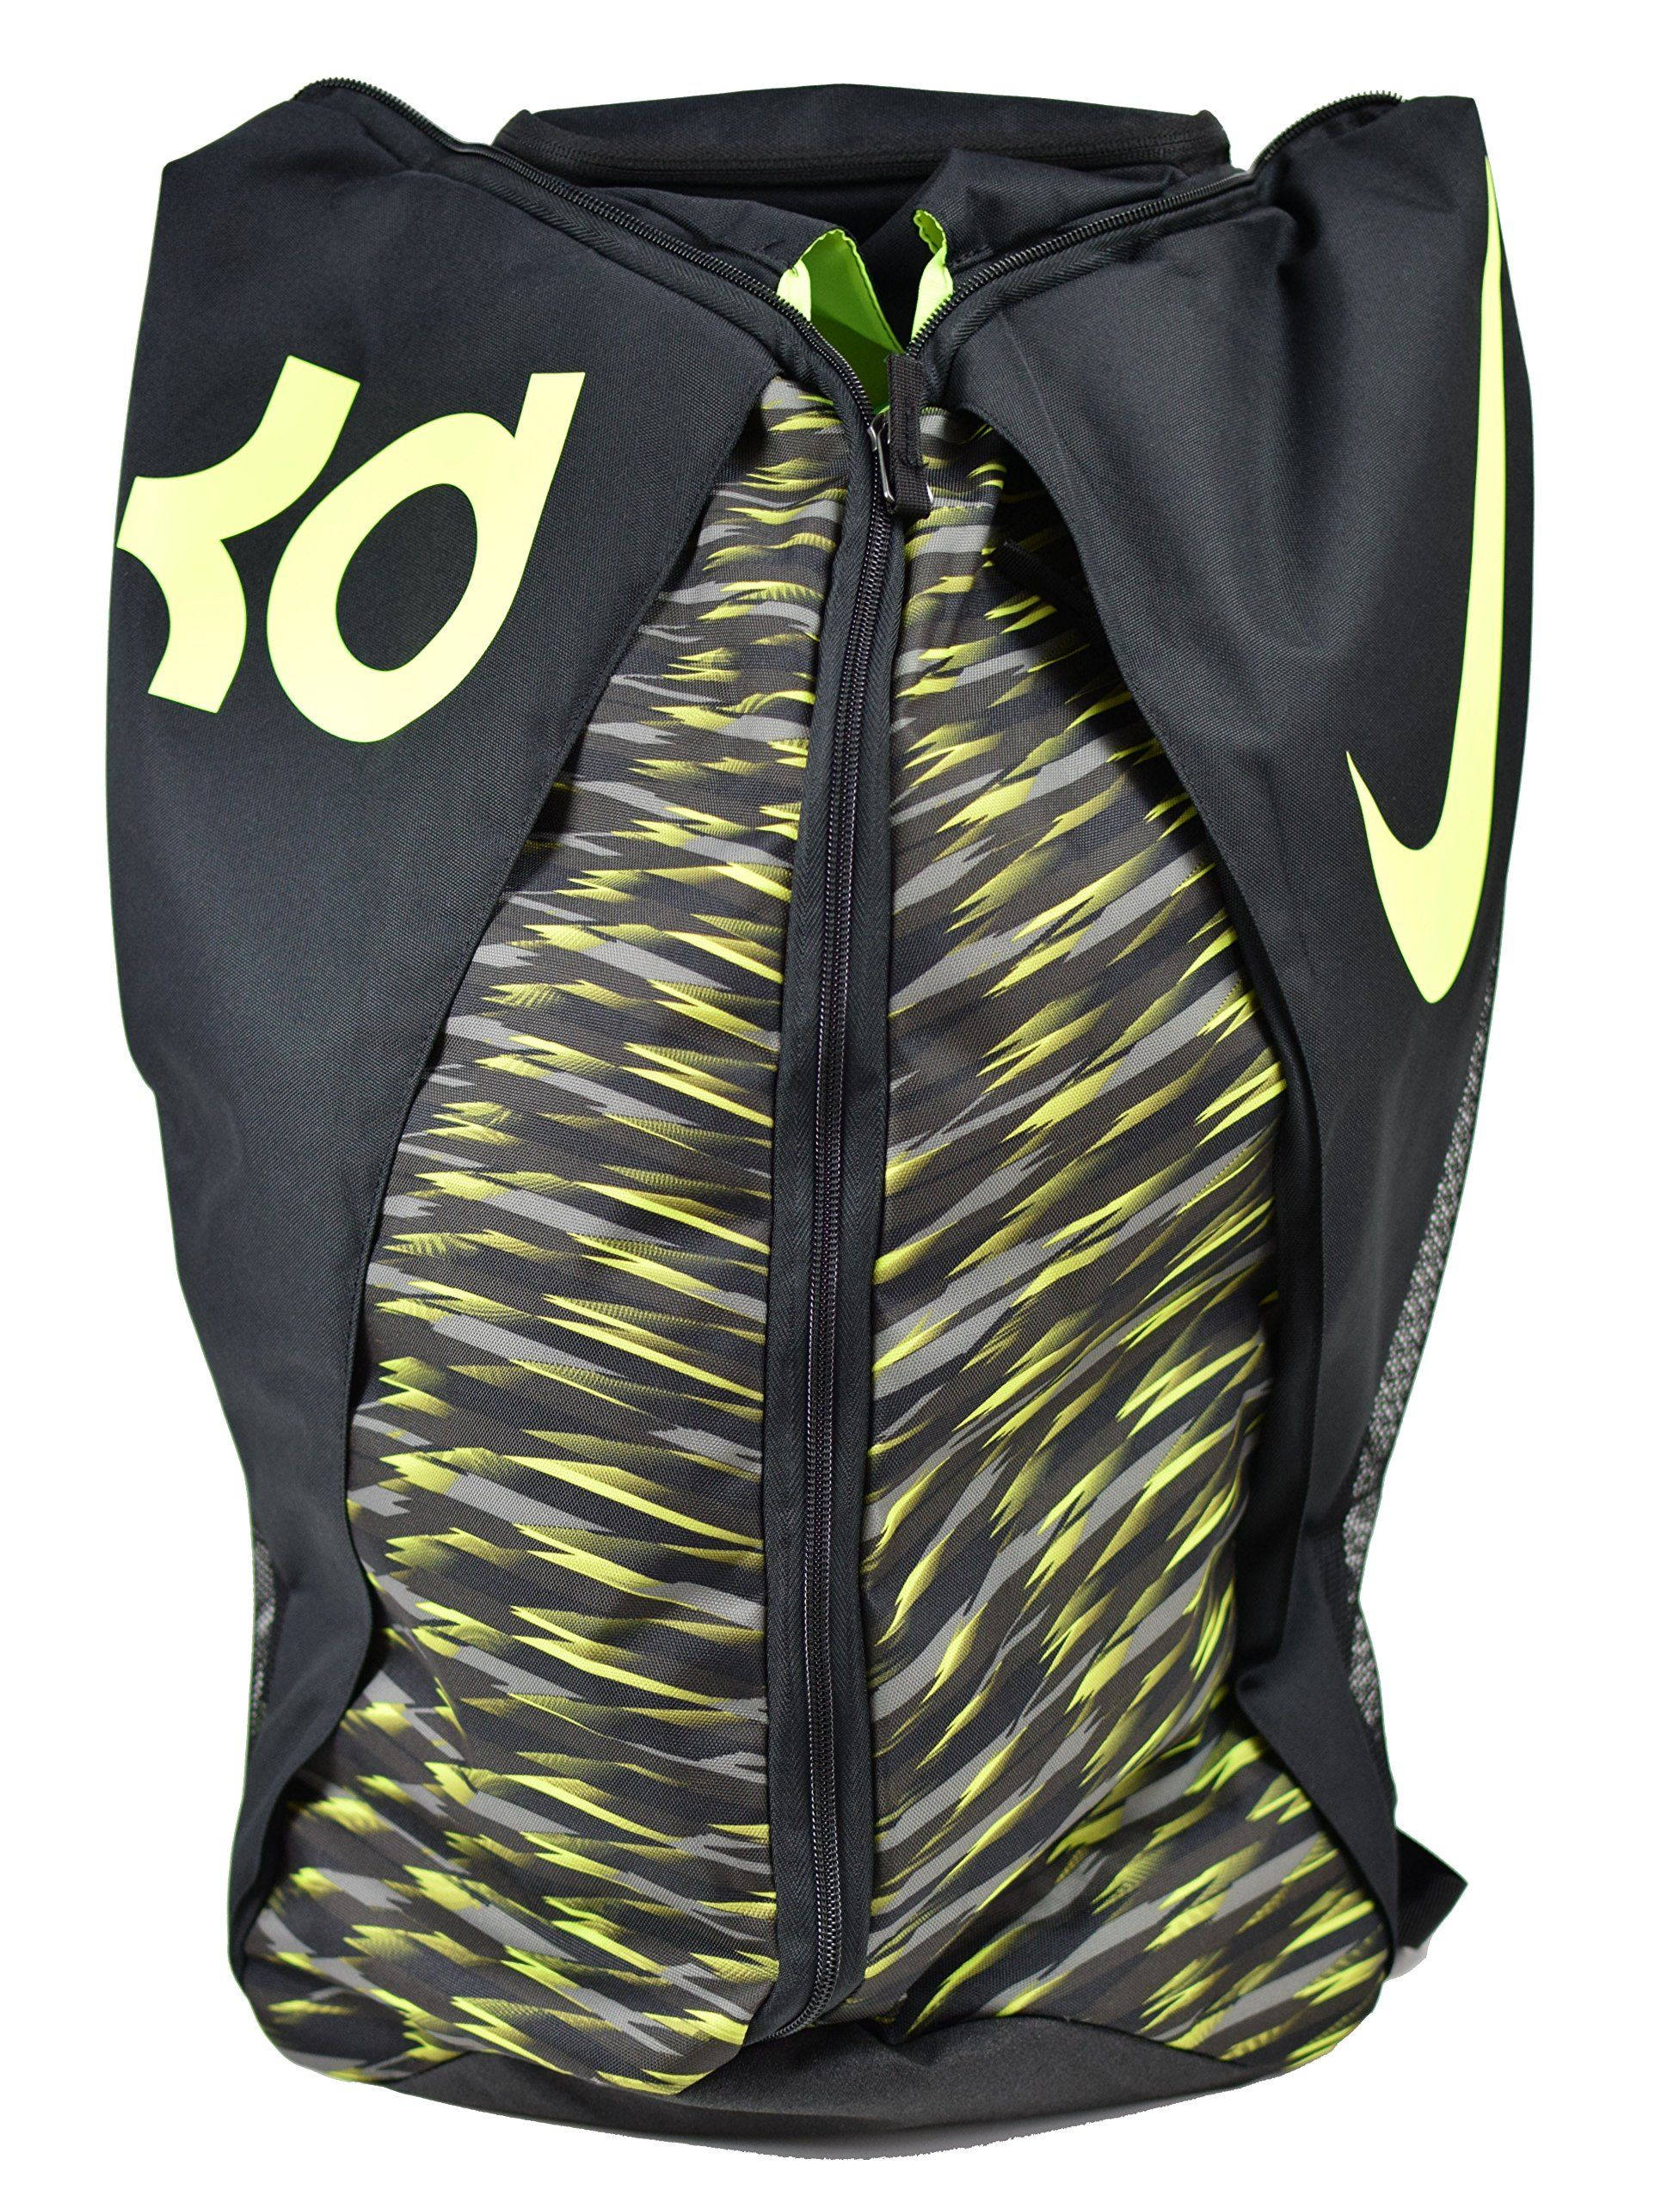 5de72acaa39 Nike KD Max Air VIII Basketball Backpack Black Tumbeled Grey Volt. Opens  like a duffel bag for easy access. Shoe compartment holds up to a size 15.